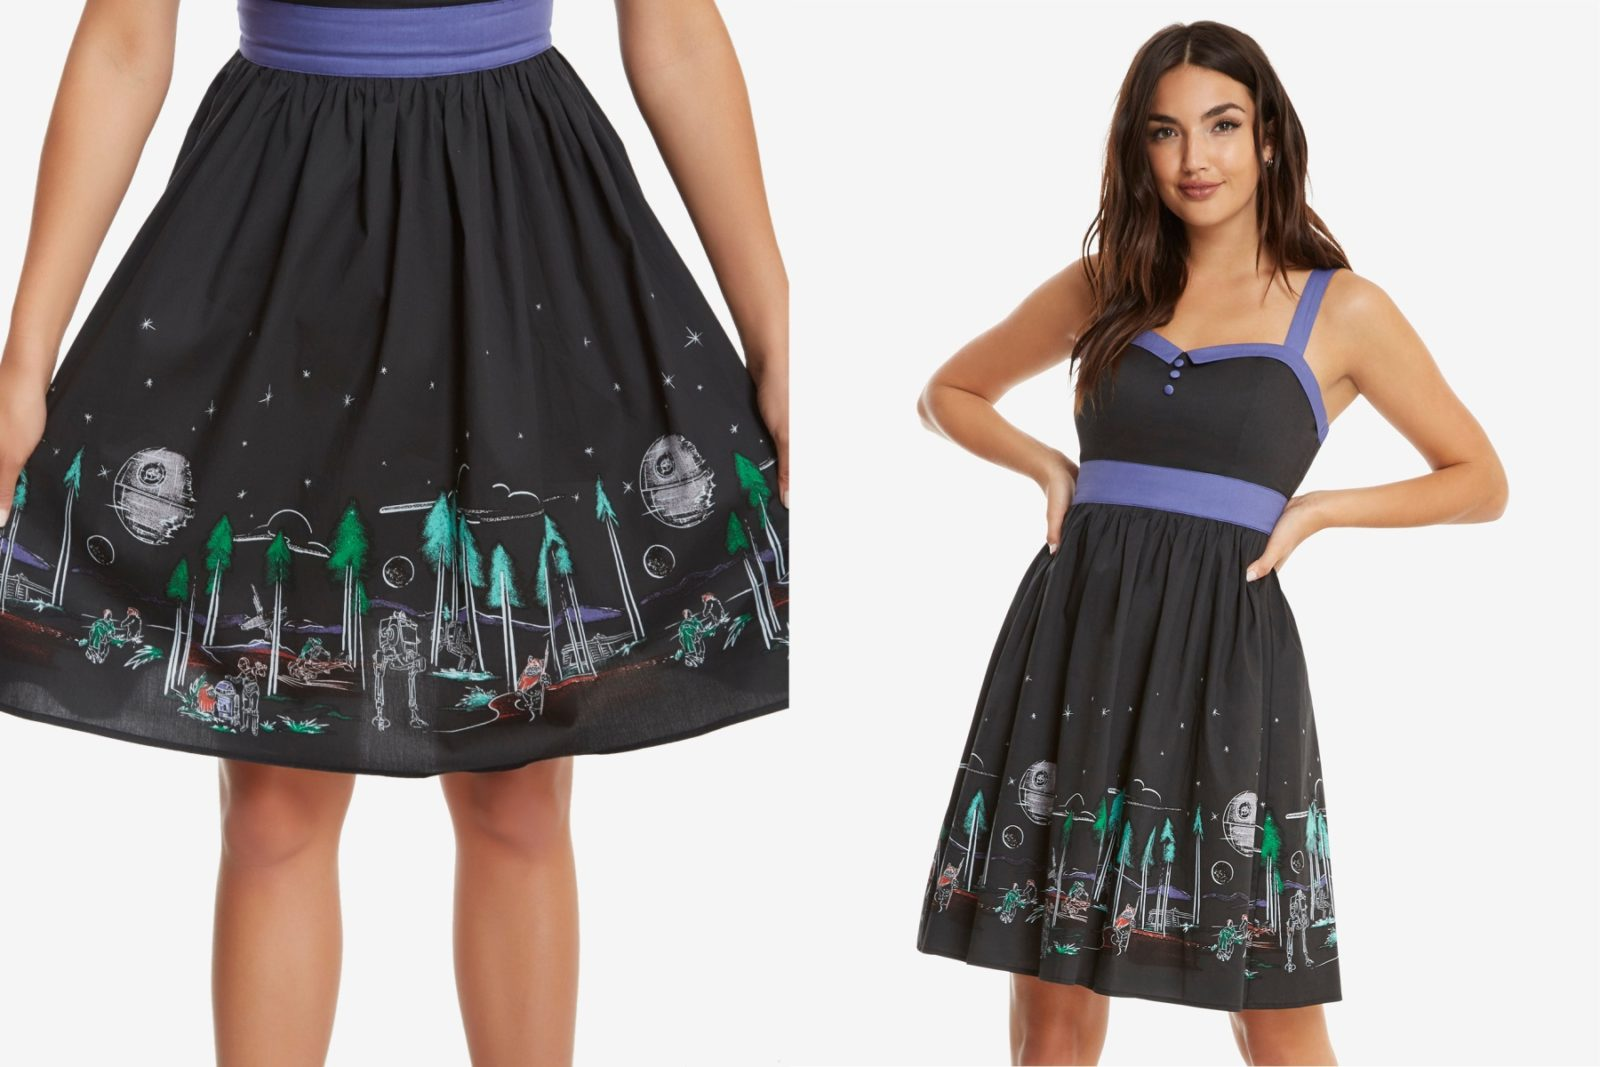 New Her Universe Endor Landscape Dress